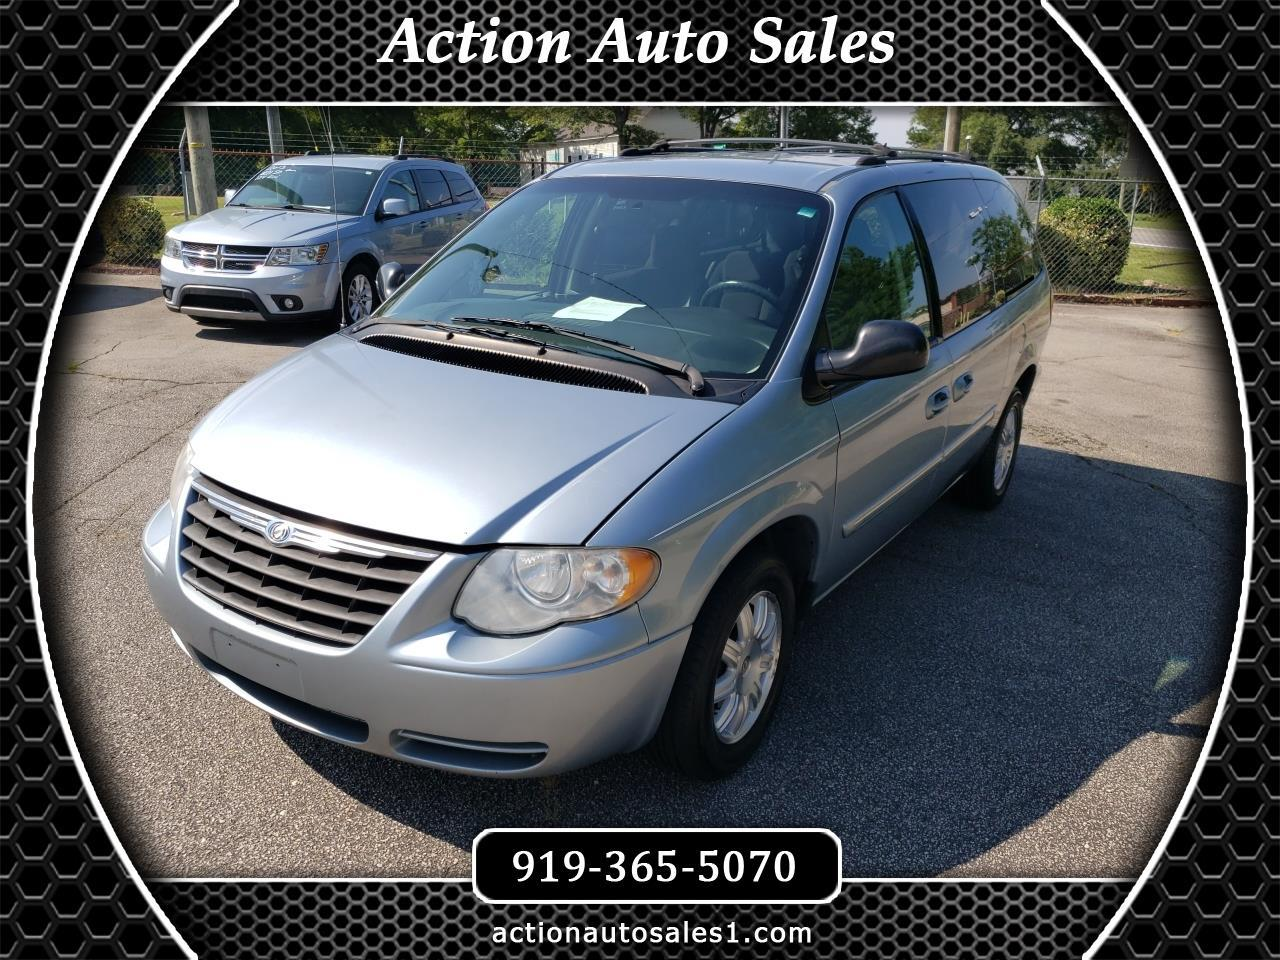 2005 Chrysler Town & Country $599